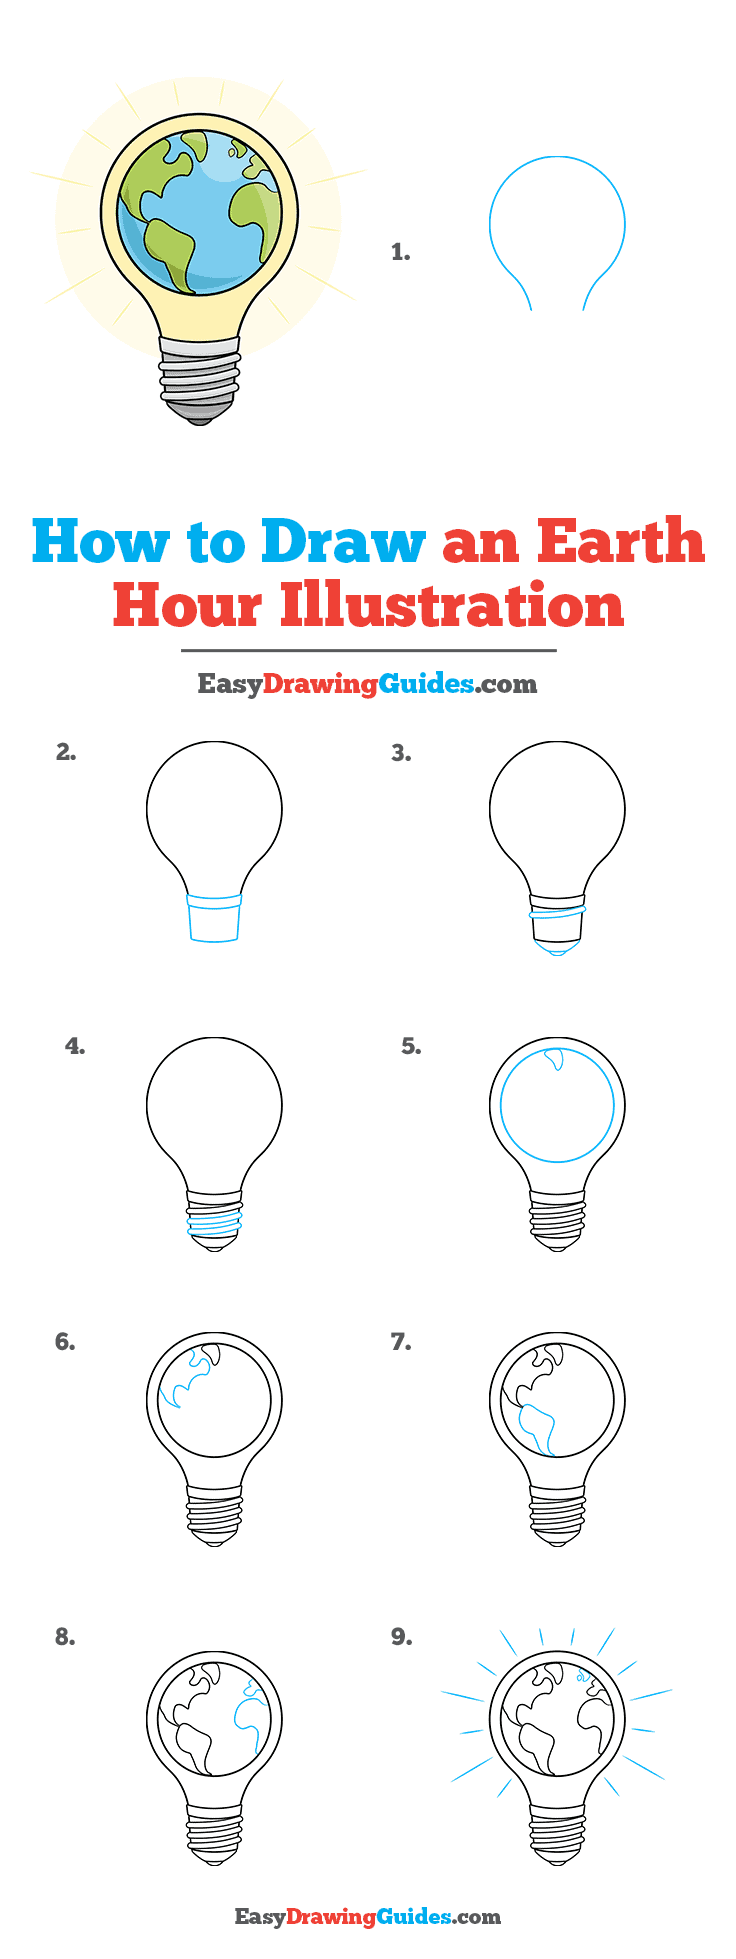 How to Draw an Earth Hour Illustration Step by Step Tutorial